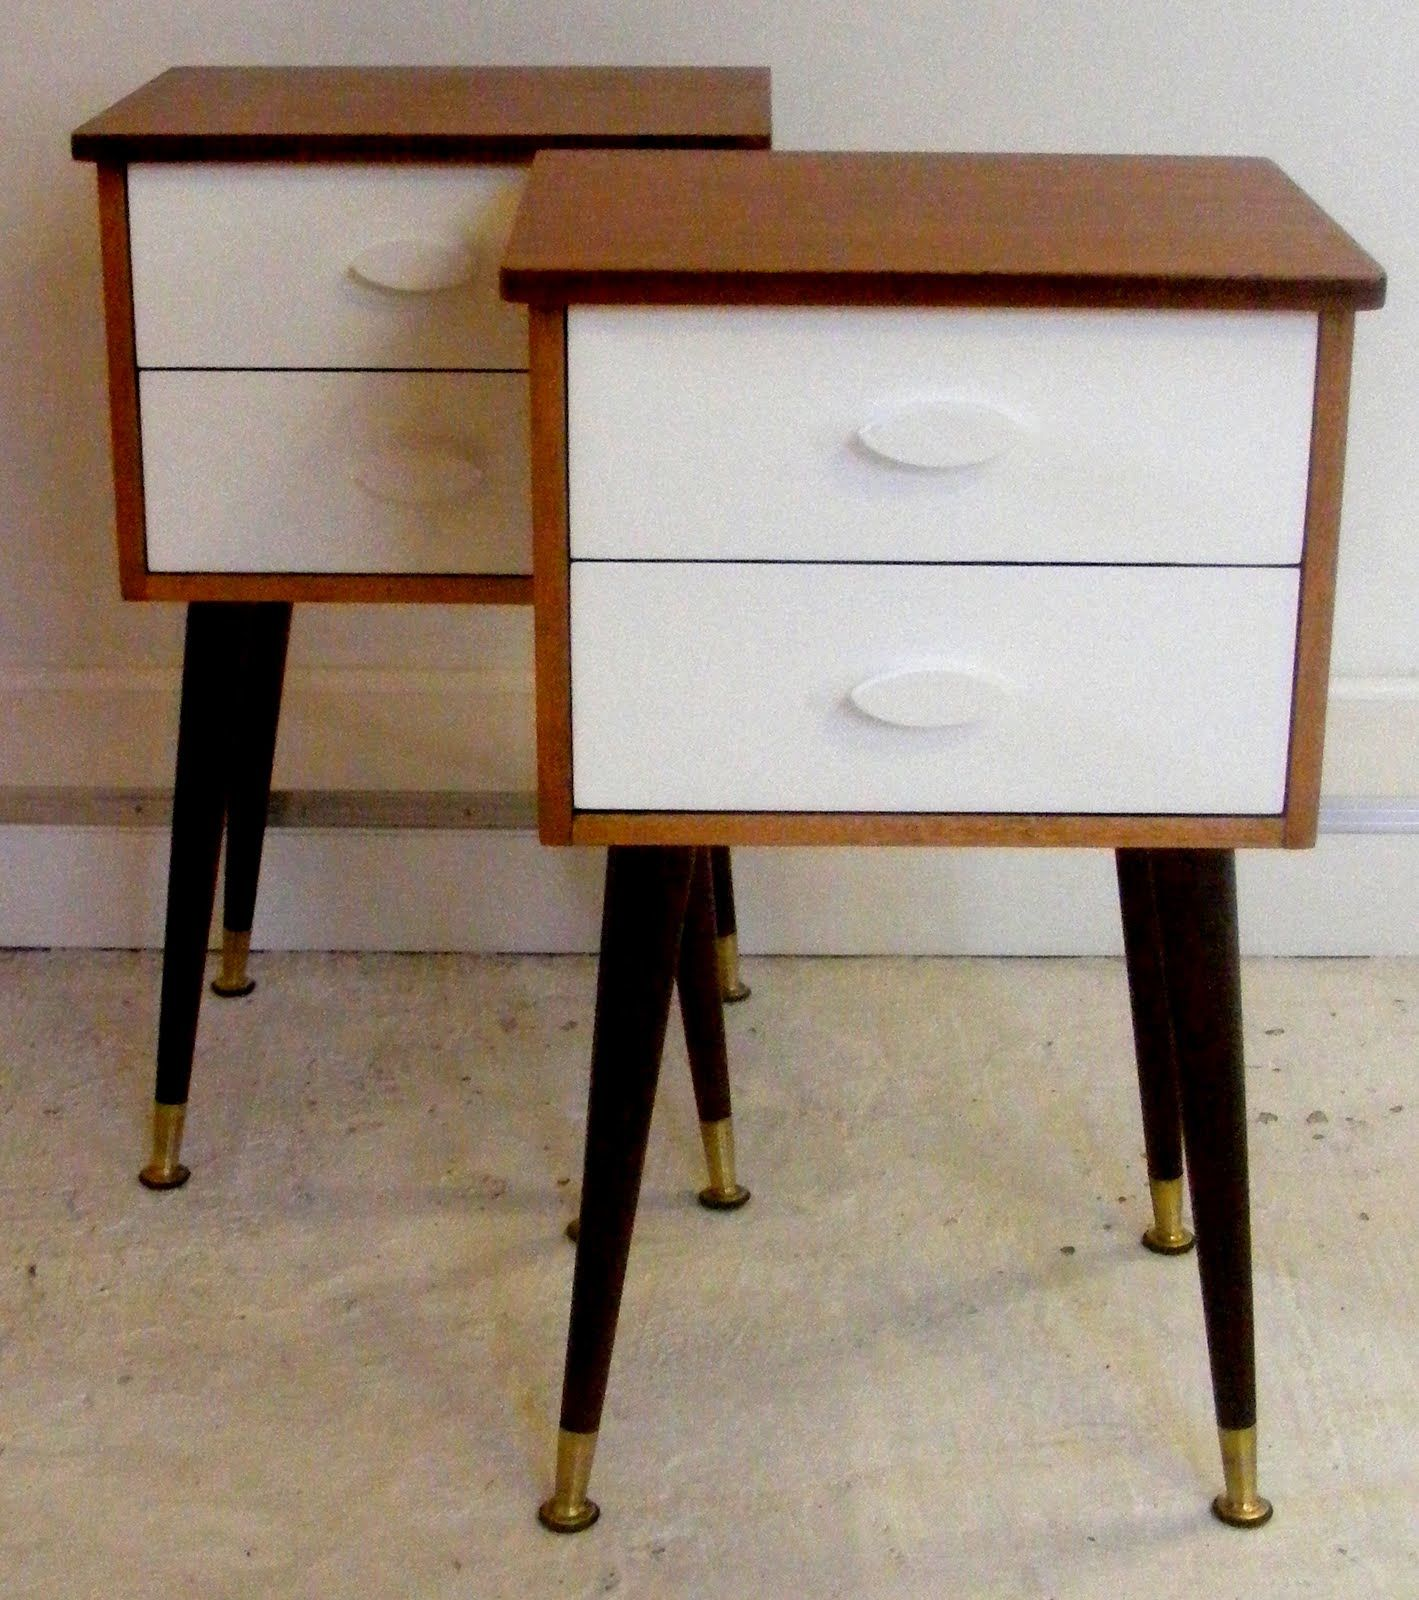 Contemporary Nightstands Clearance | Houzz Bedside Tables | Modern Bedside Tables